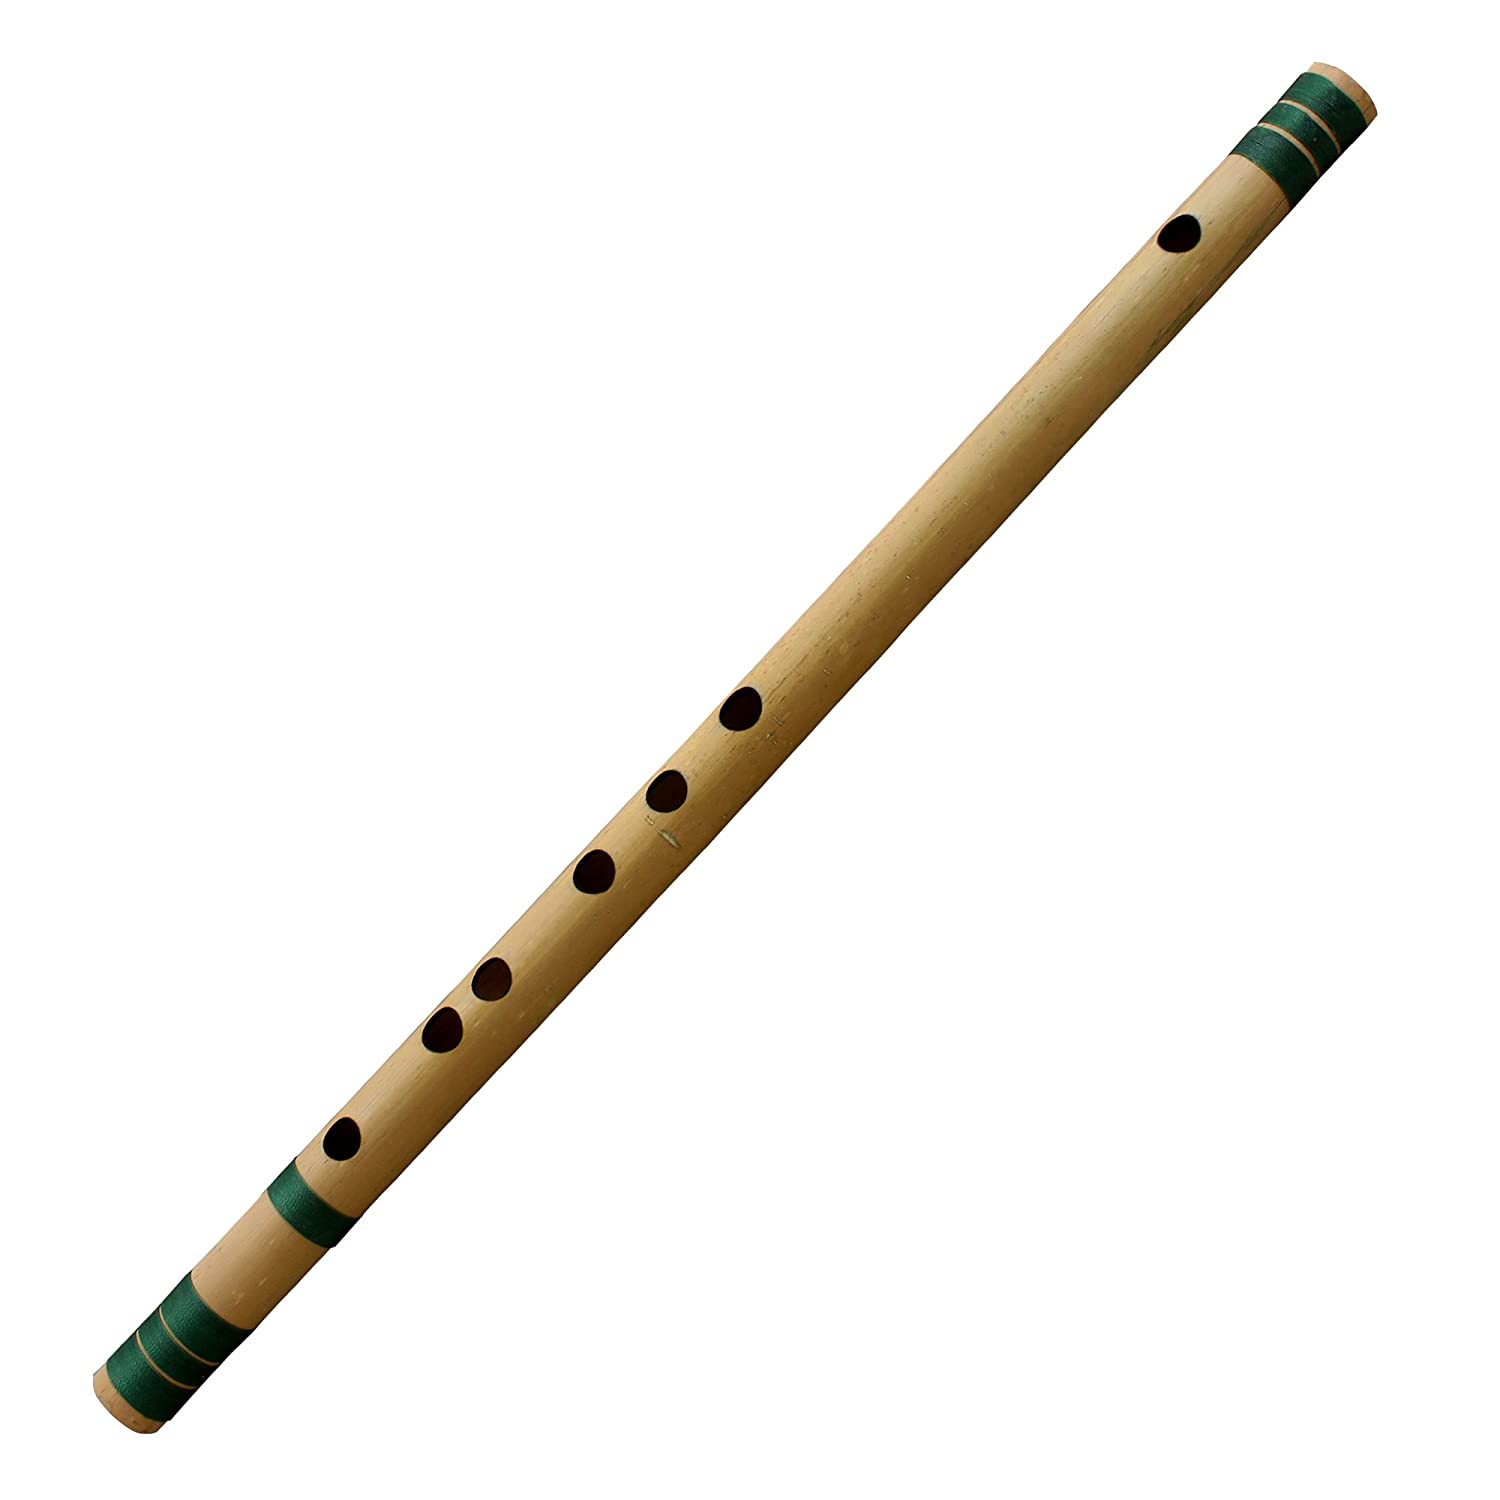 Indian Bansuri Flute Bamboo Transverse, Key-C#, 18 Inches Long - Professional Woodwind Musical Instruments RoyaltyRoute RRN-bansuri006